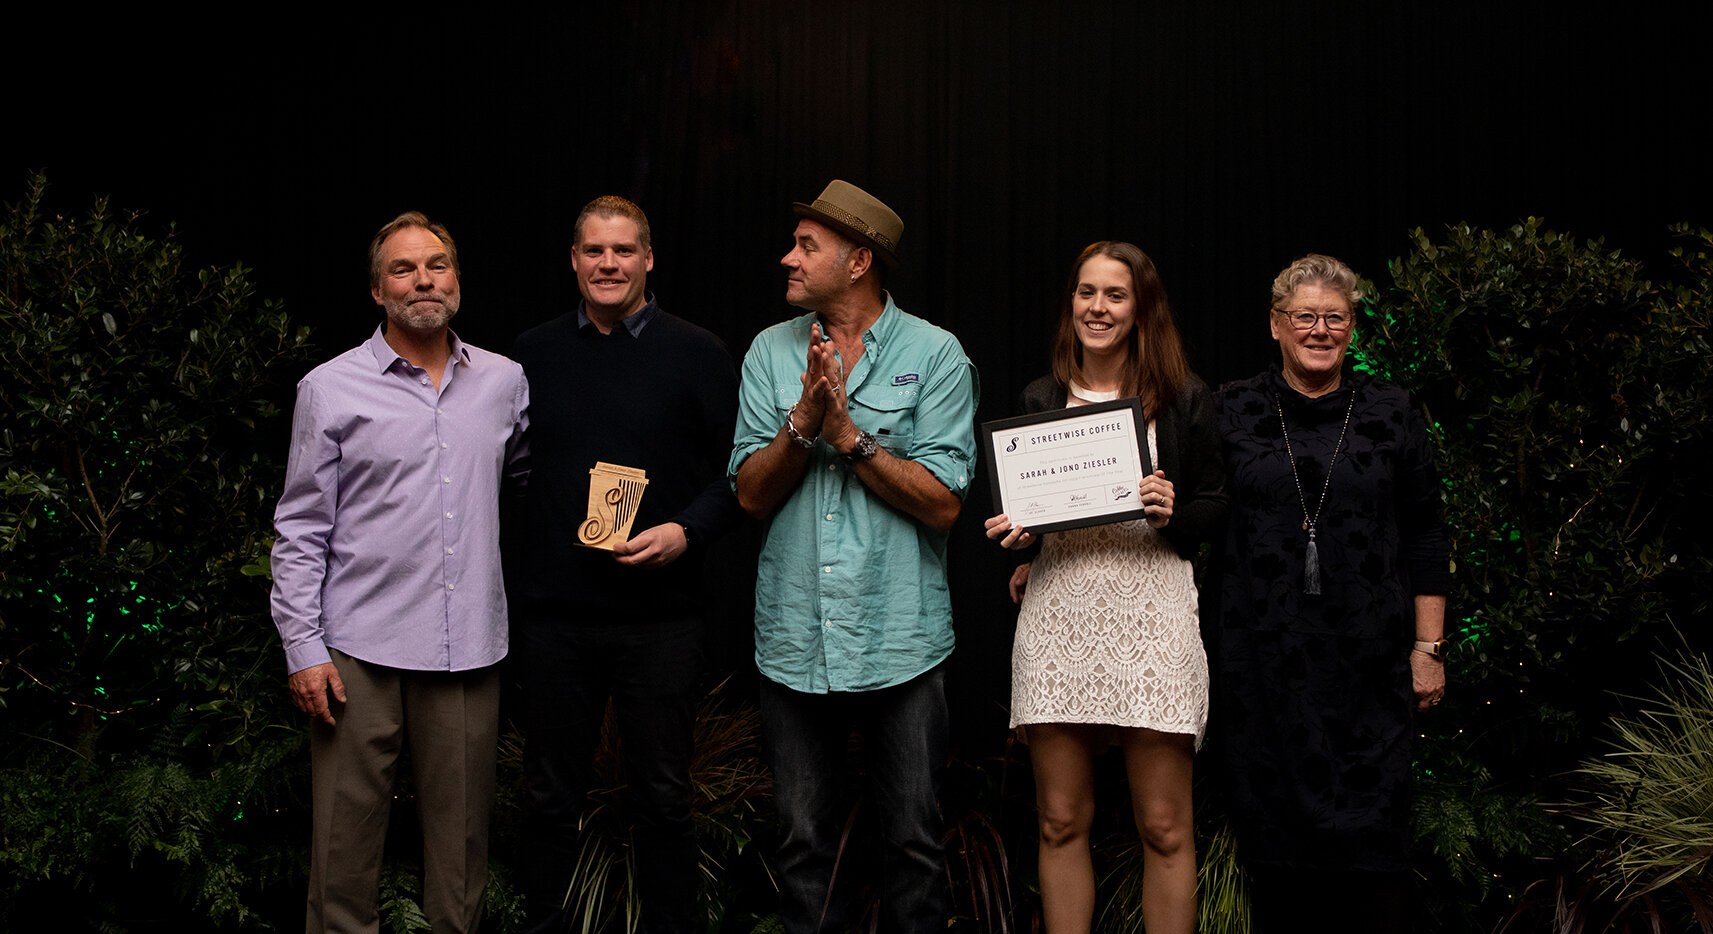 Pukekohe Cart for Streetwise Coffee Franchisee of the Year - From left to right - Director Jol Glover, Cart Owner Jono Ziesler, Havana Coffee Supplier Geoff Marsland, Cart Owner Sarah Ziesler and Director Donna Ferrall.